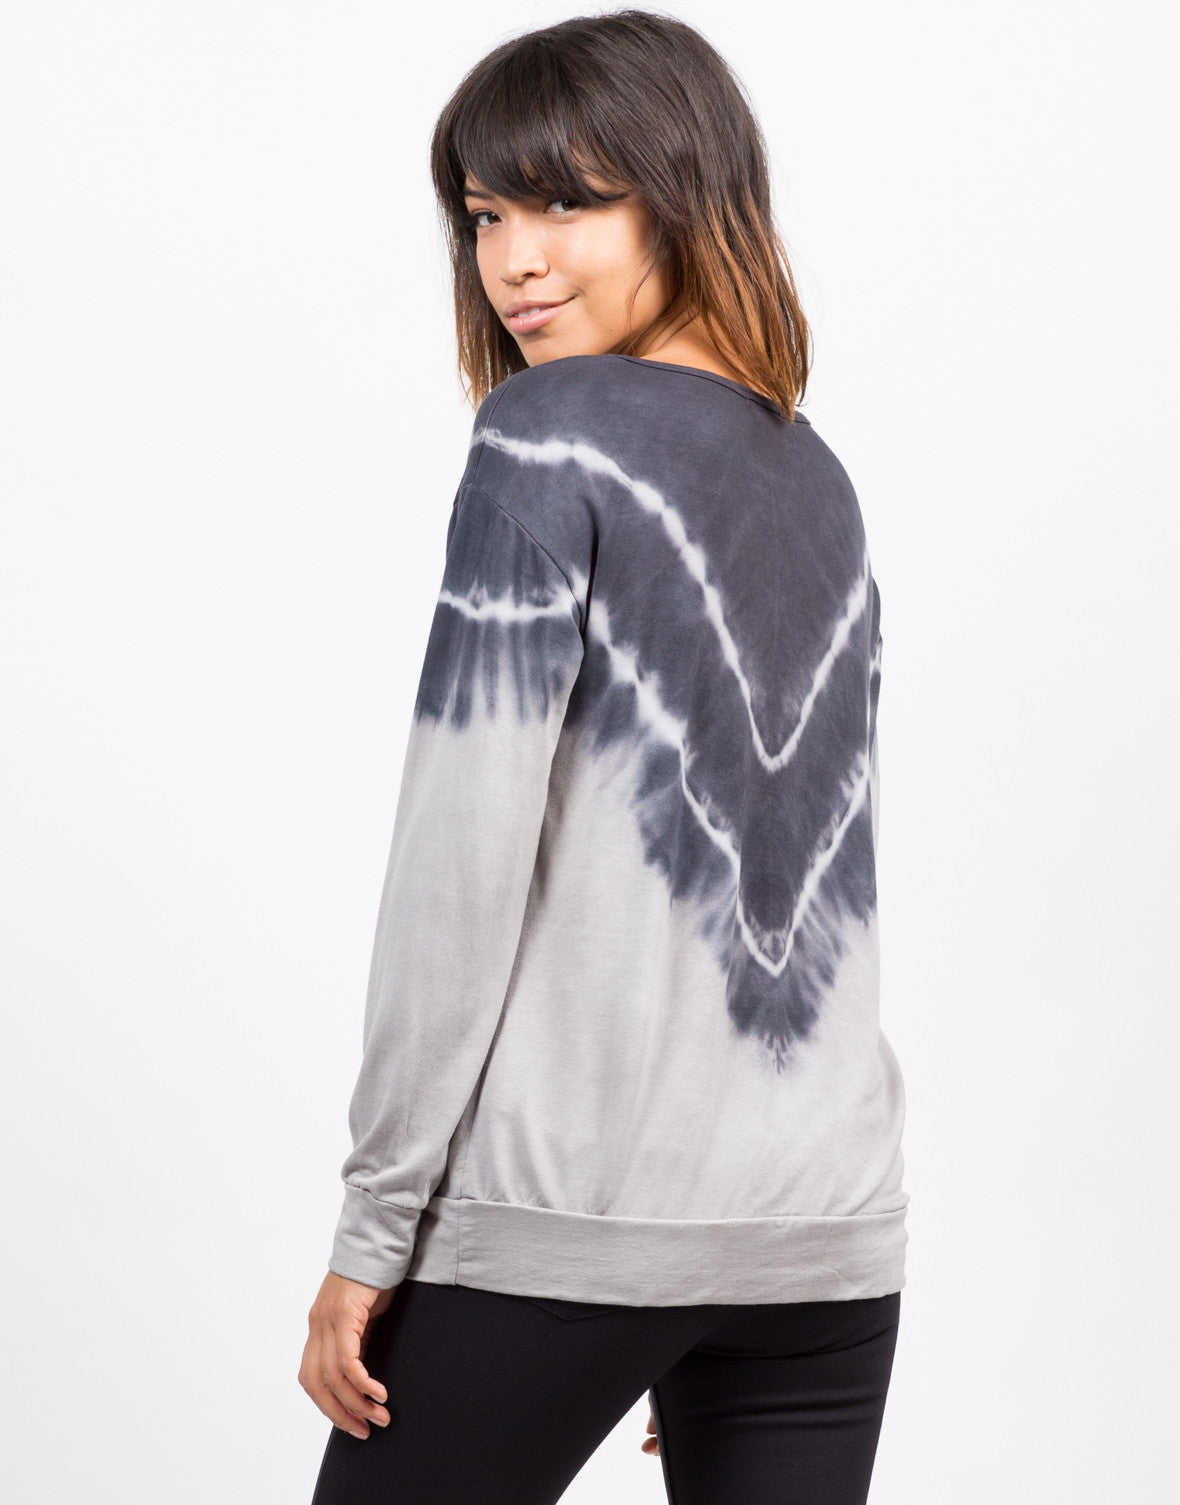 Back View of Tie-Dye V Tunic Sweater